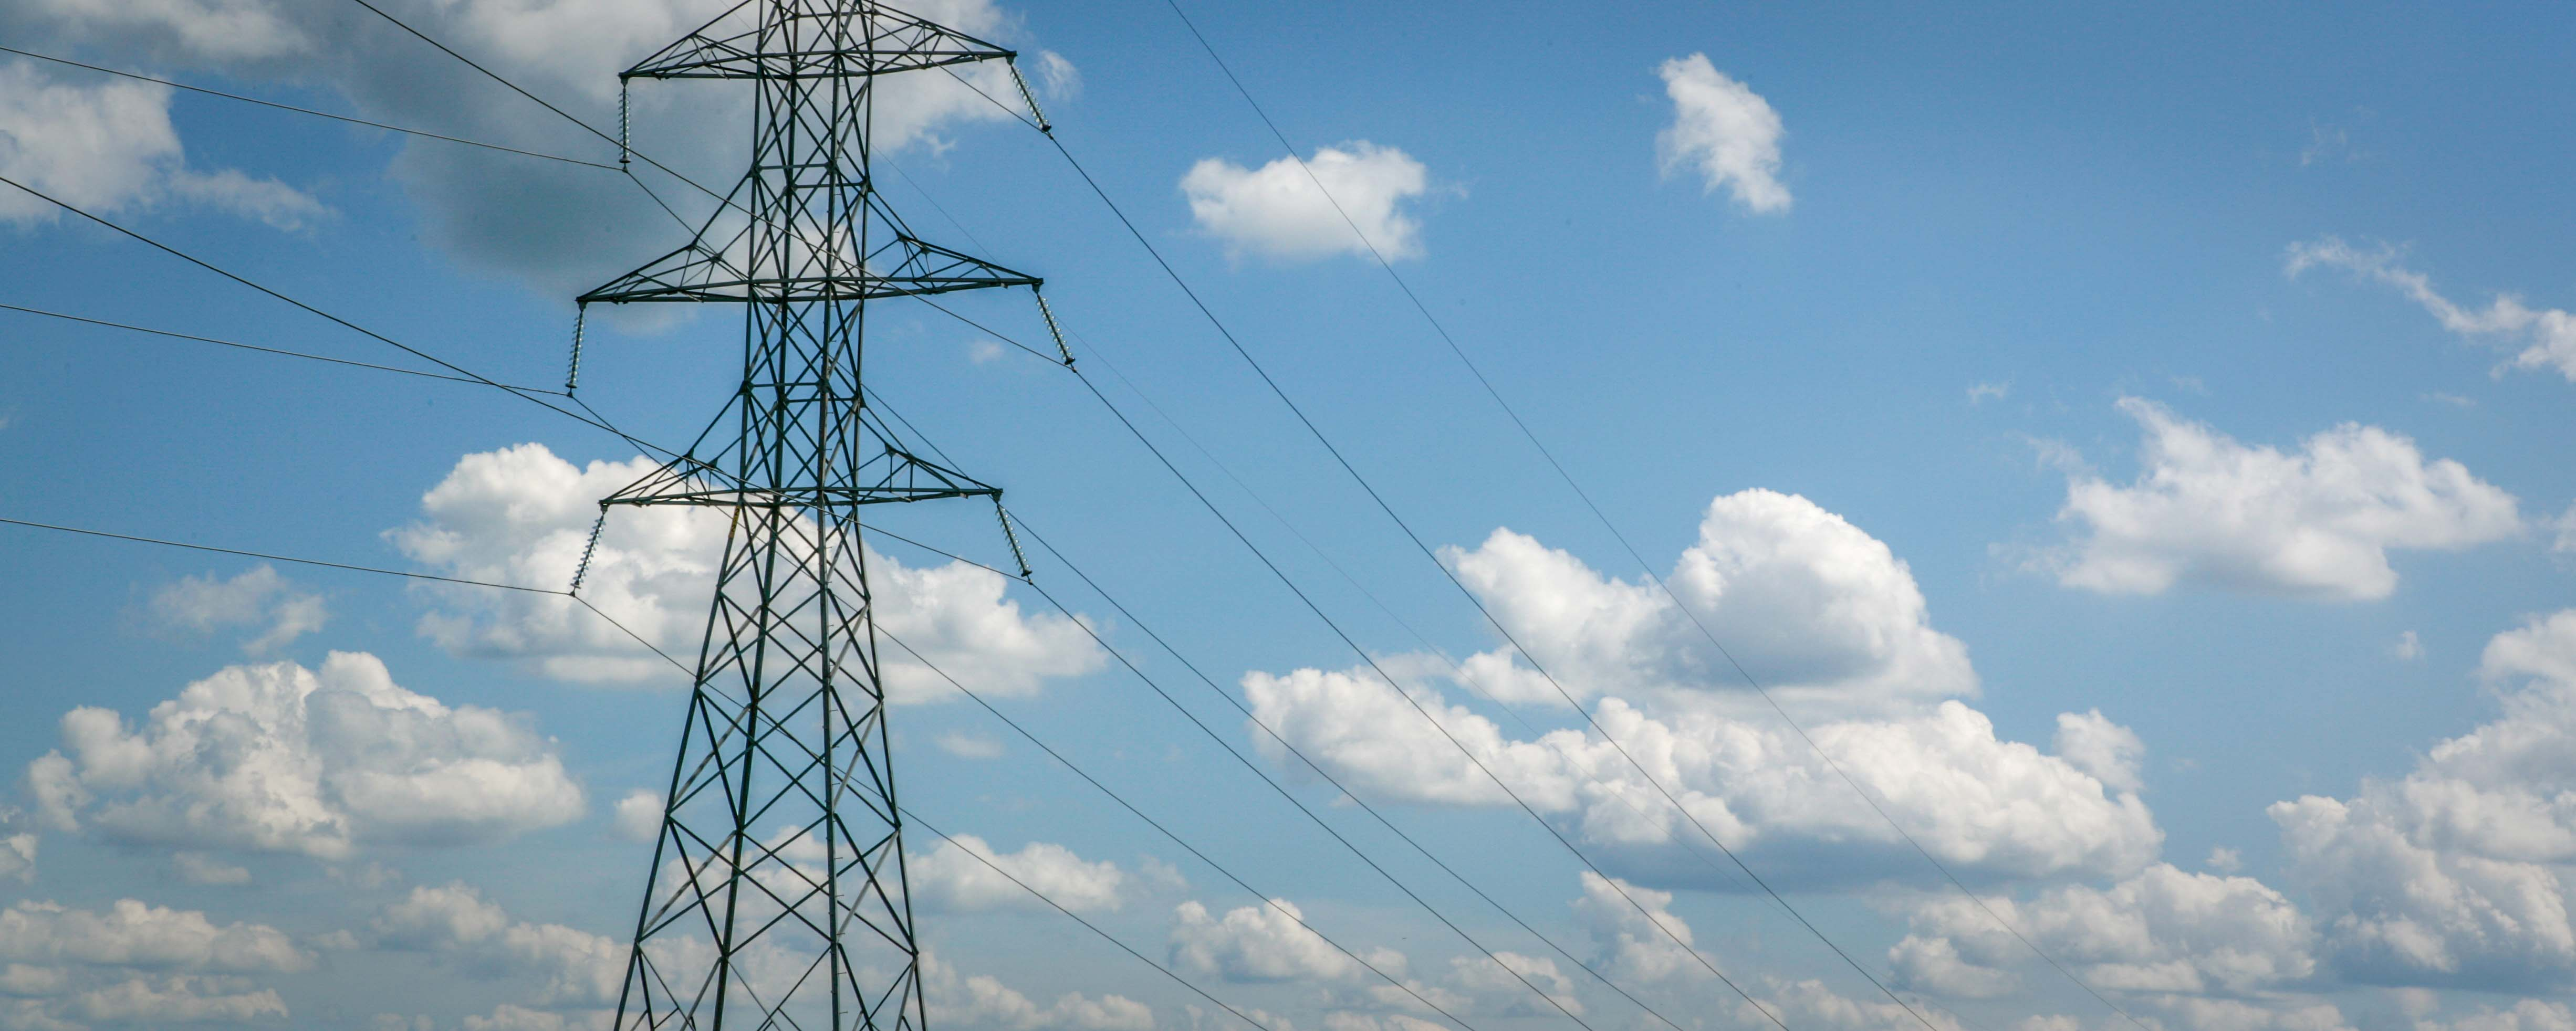 transmission tower with clouds